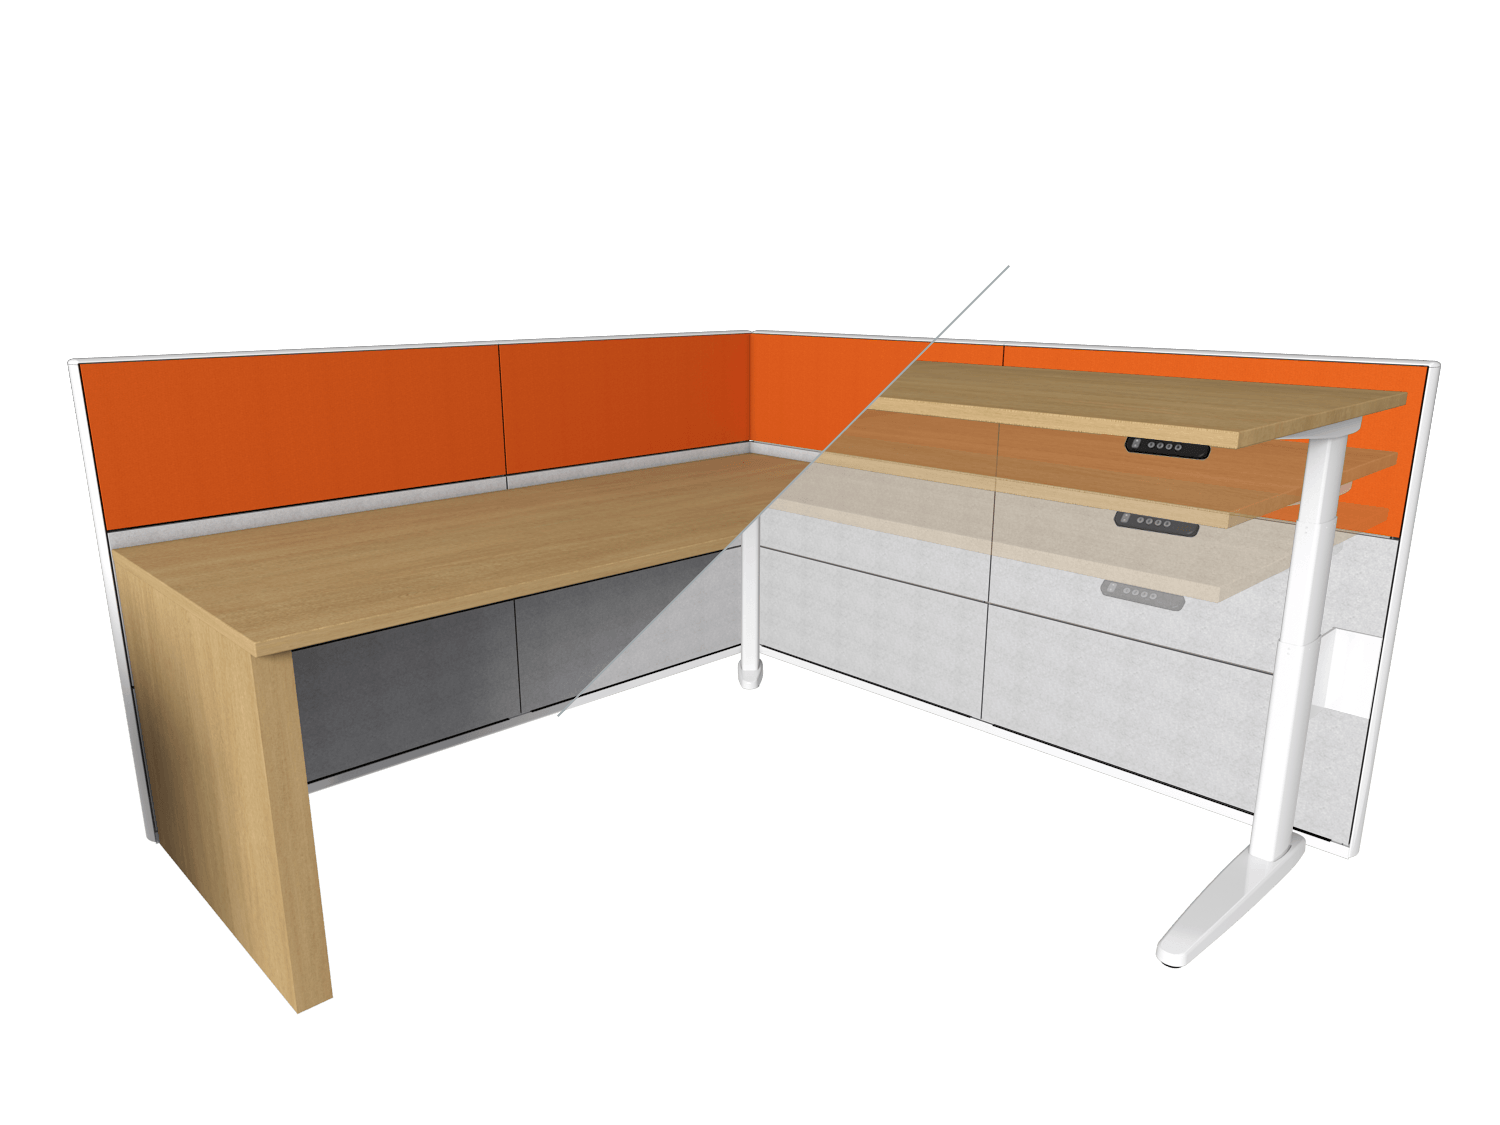 Desk conversion from traditional desk to sit-stand desk